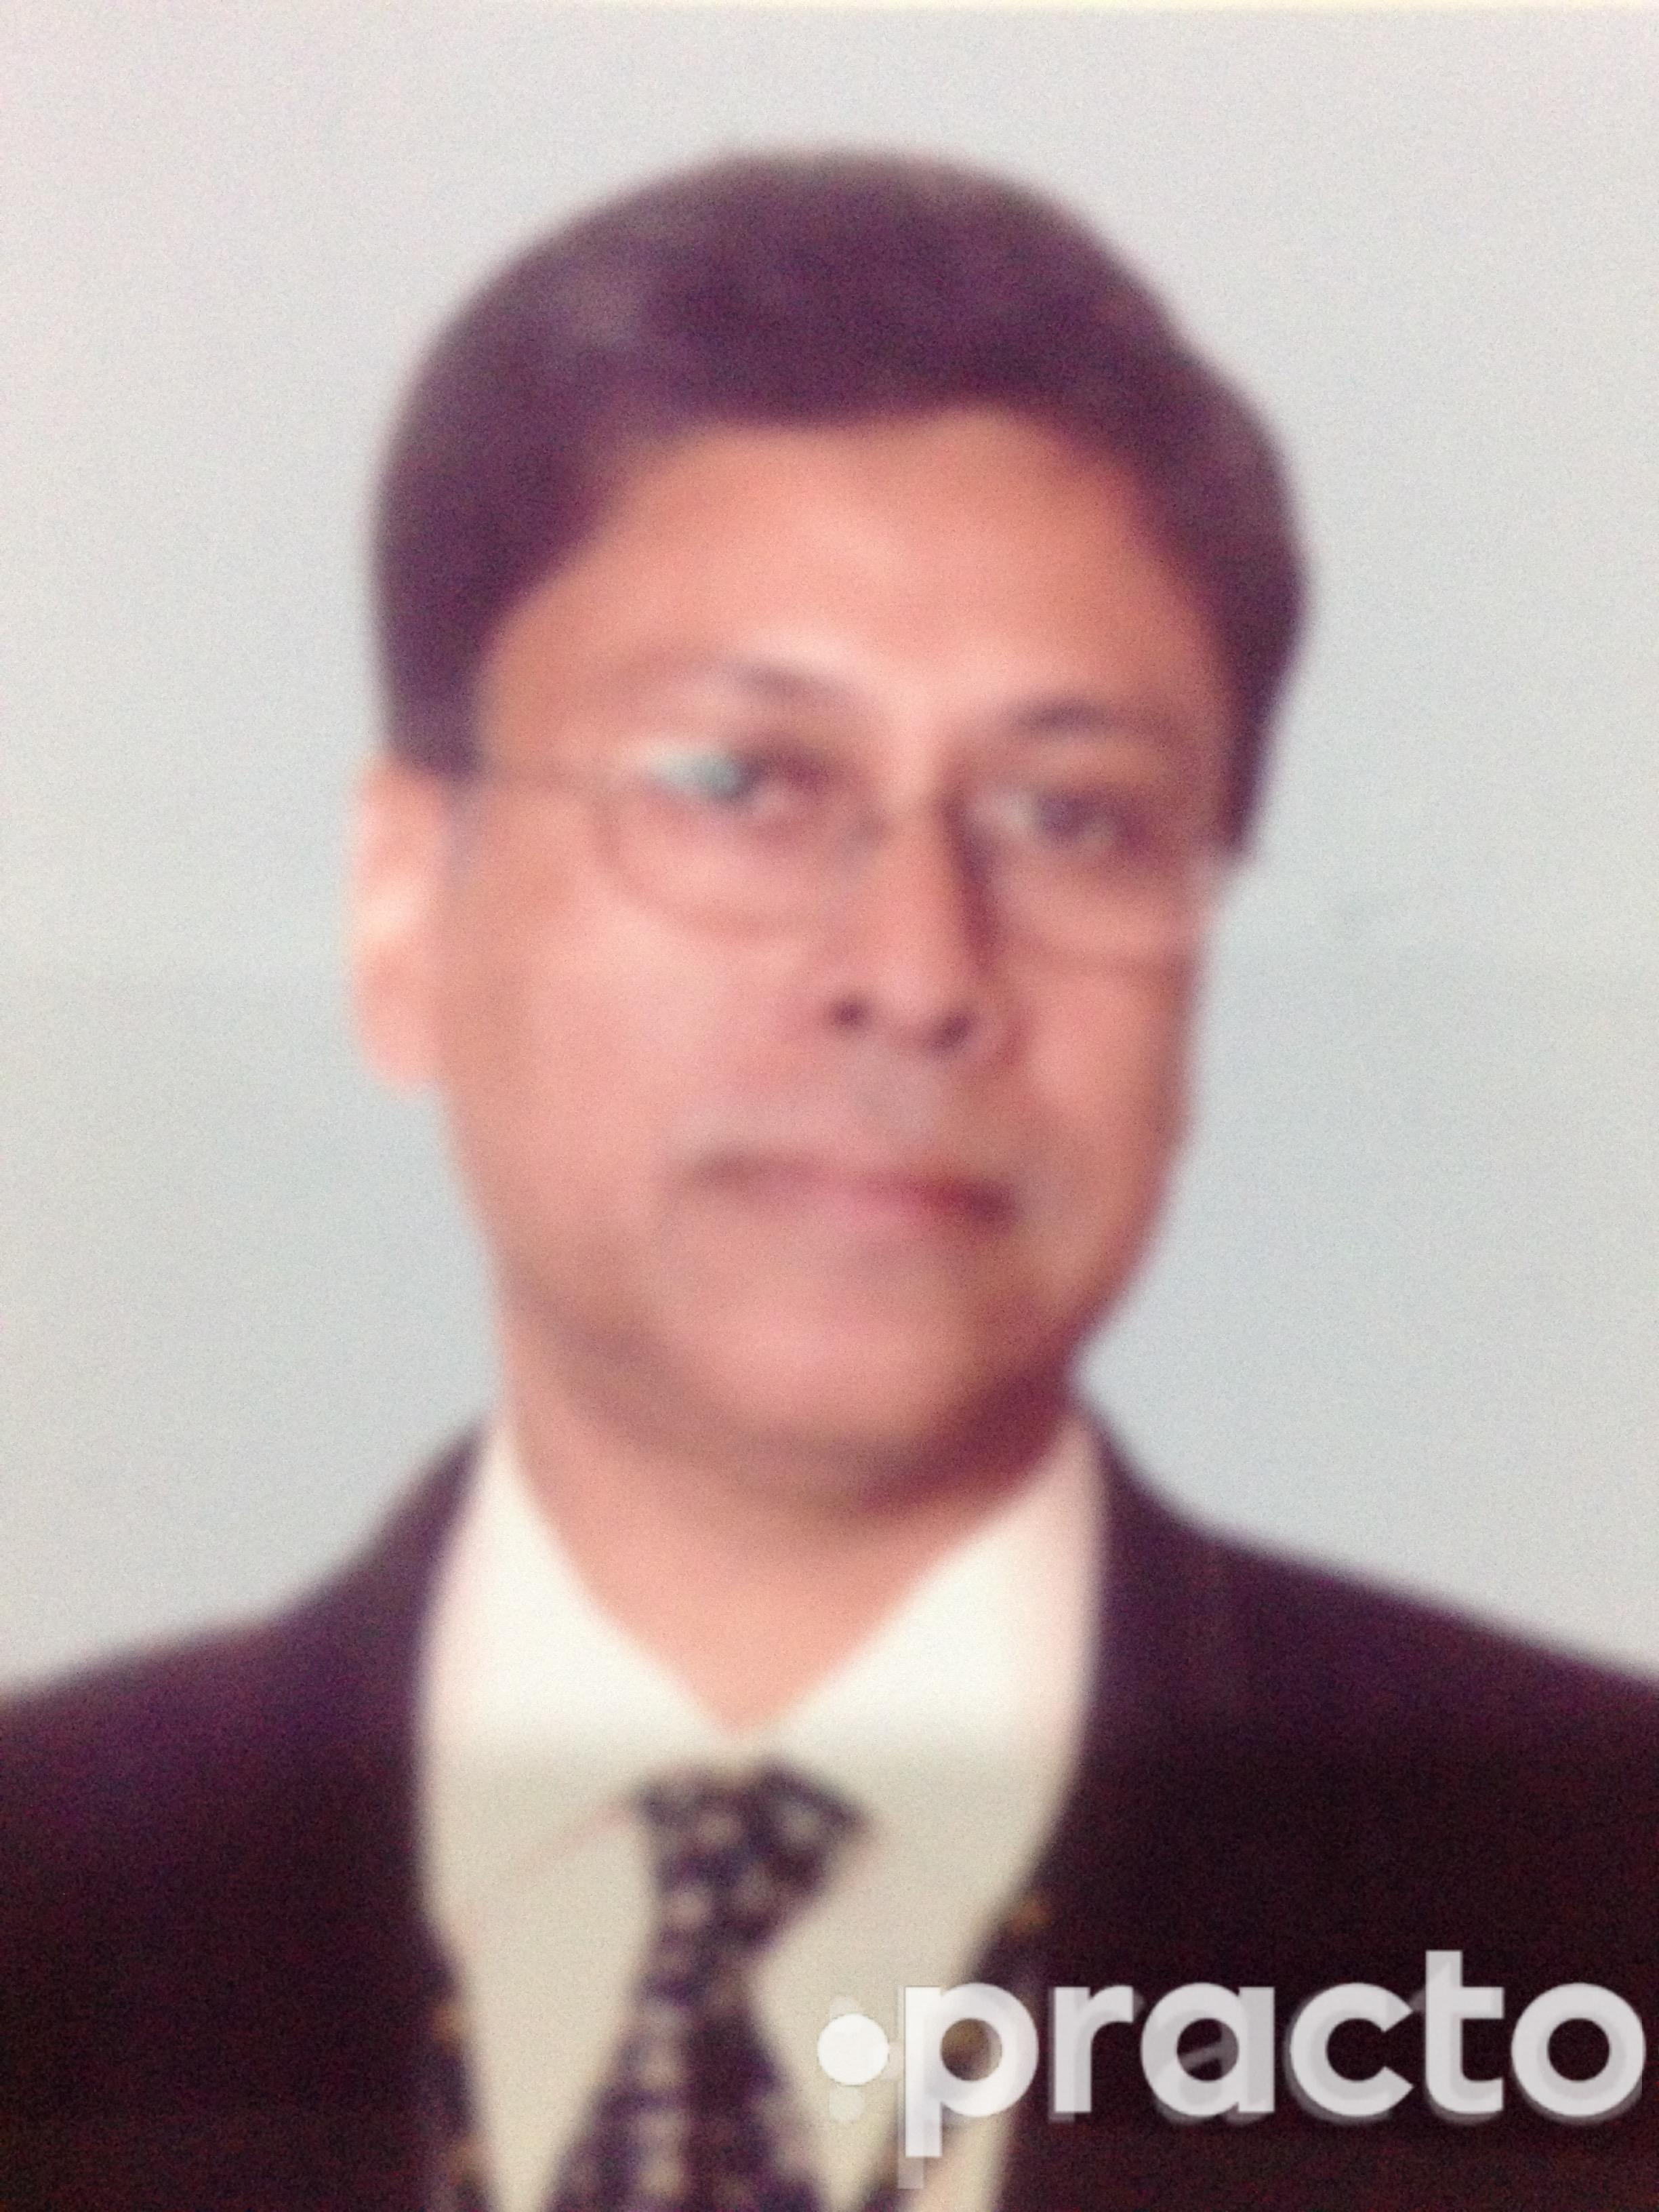 Dr. Subrata Chatterjee - Gynecologist/Obstetrician